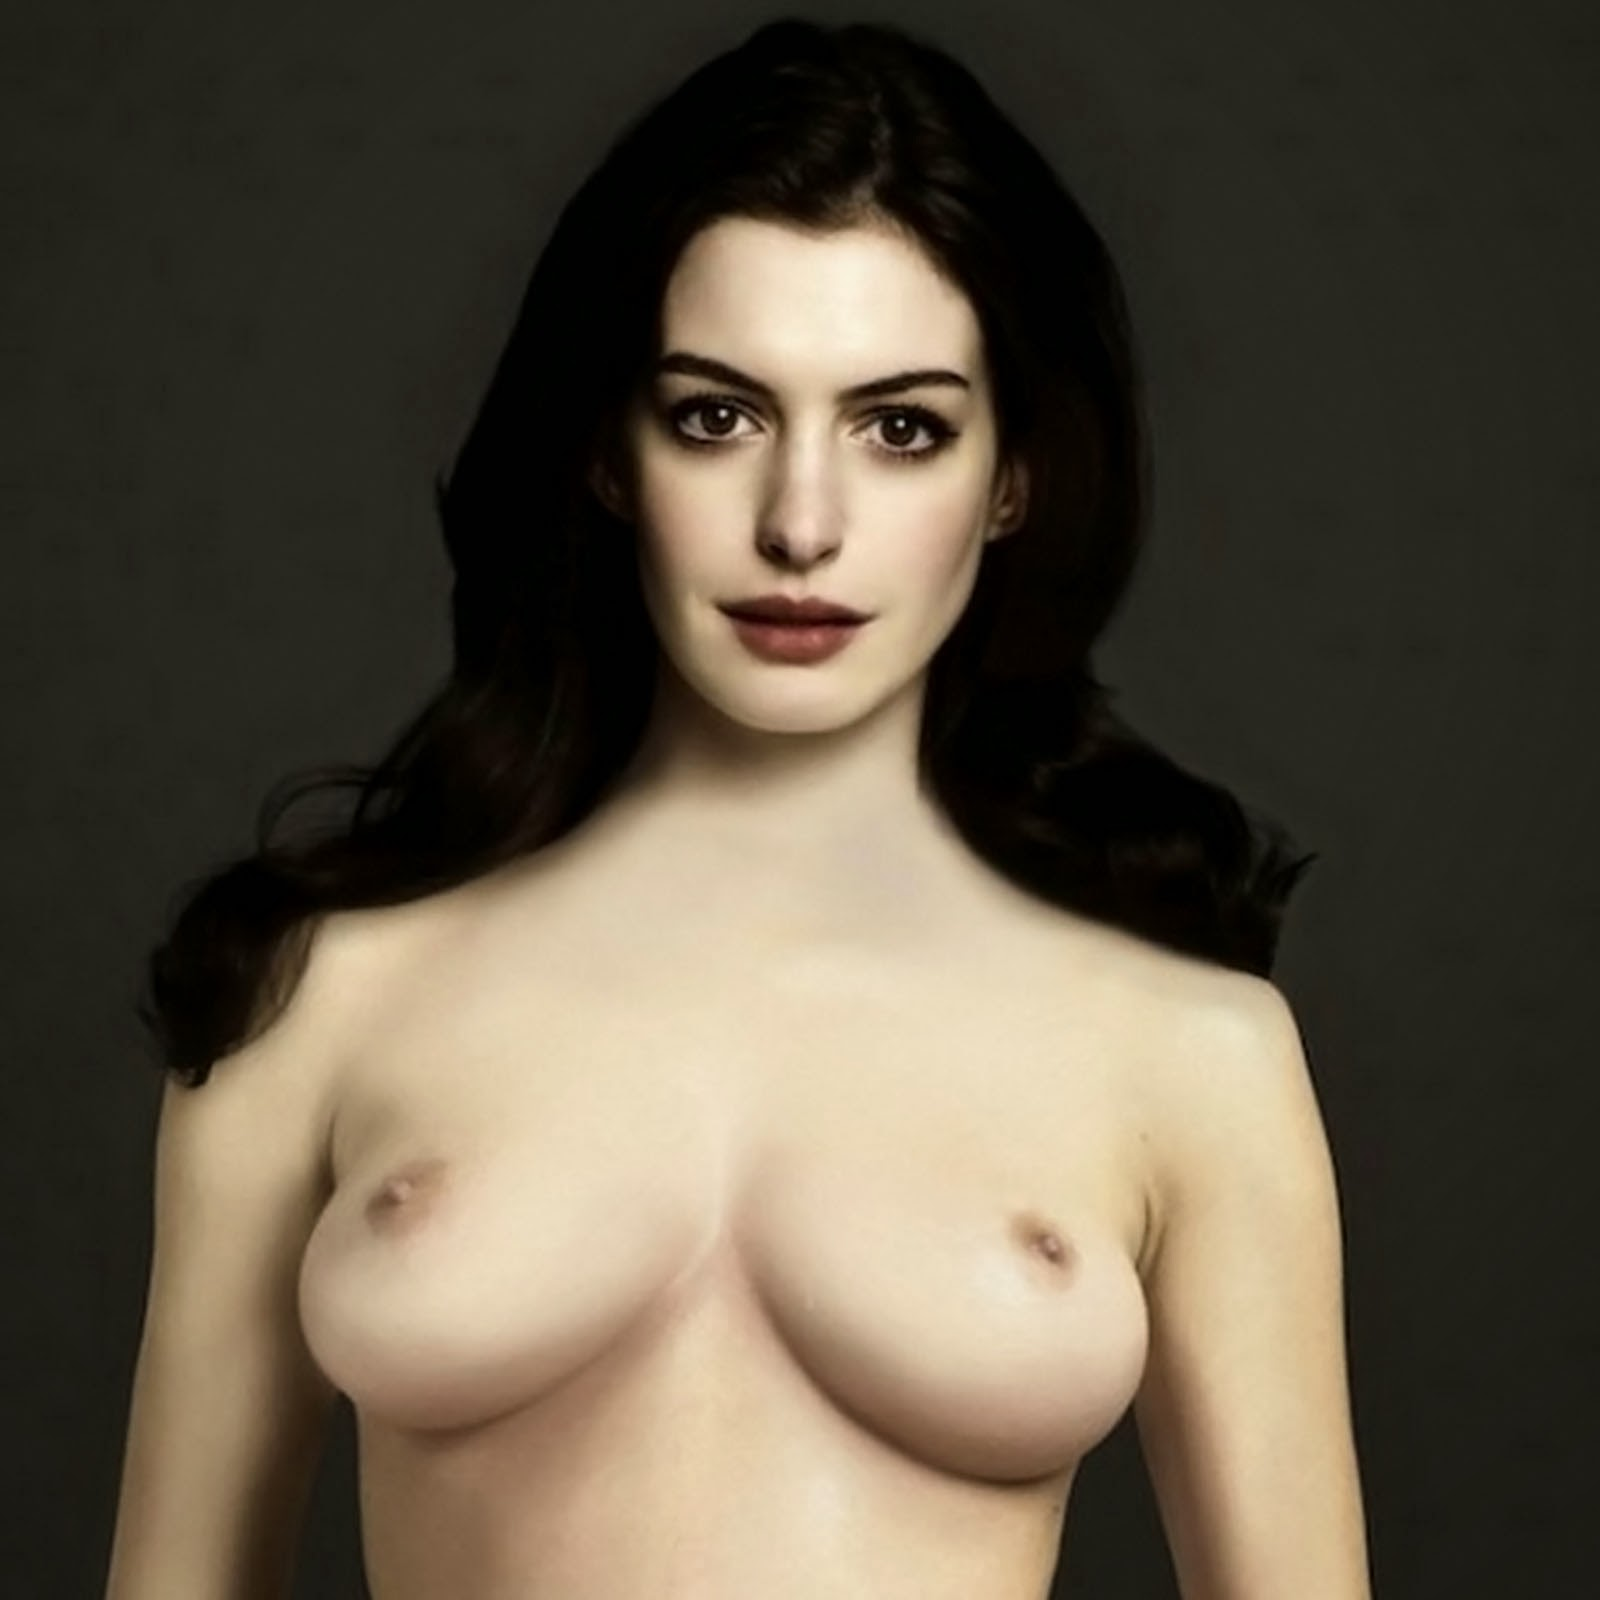 Thanks Anne hathaway actress